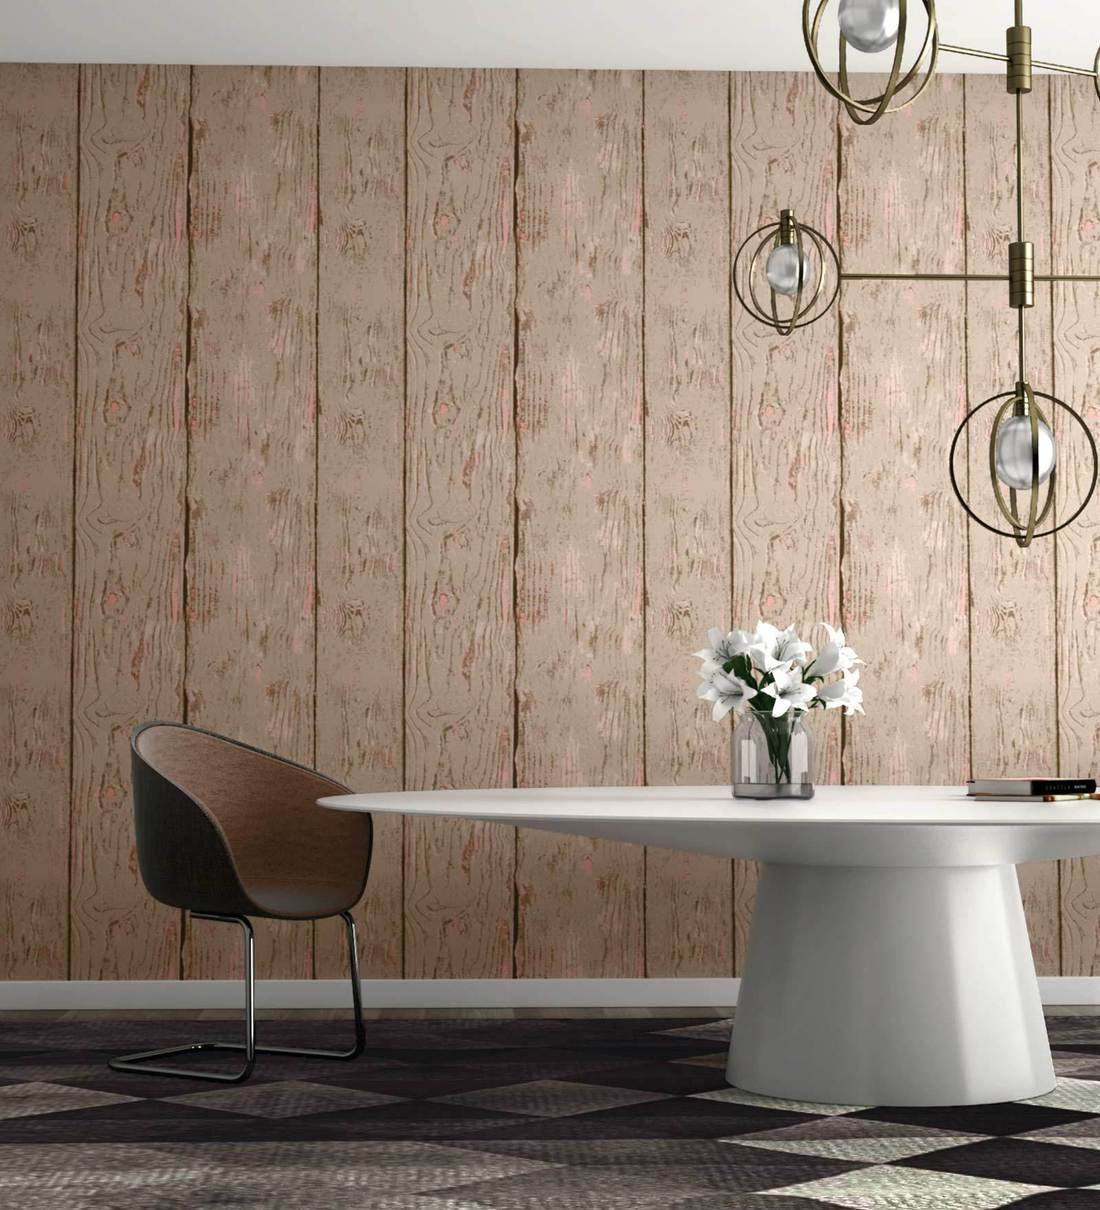 Buy Brown Pink Forest Studio Wallpaper Nilaya Wall Coverings By Asian Paints Online Pattern Textures Wallpapers Furnishings Home Decor Pepperfry Product